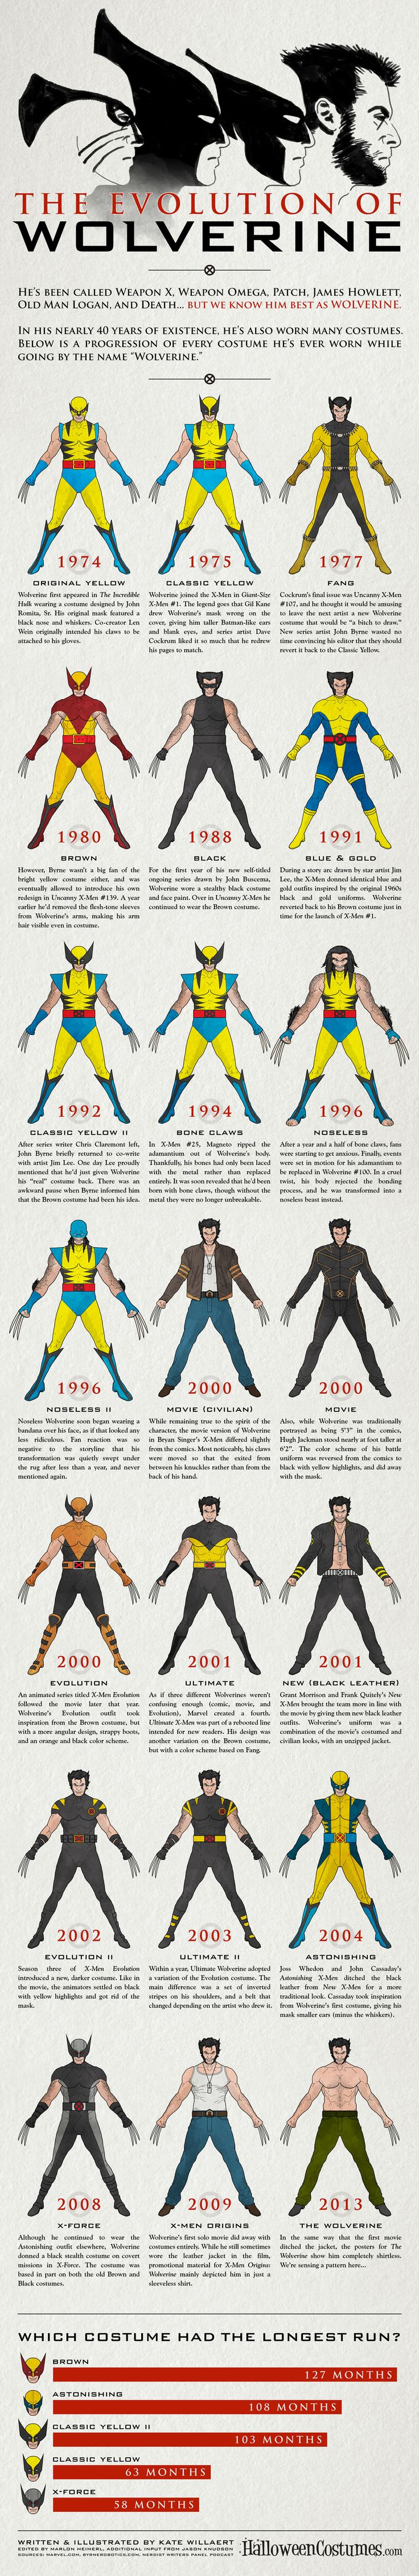 """Wolverine costumes over time infographic. Need to know. (^.^) Thanks, Pinterest Pinners, for stopping by, viewing, re-pinning, following my boards. Have a beautiful day! ^..^ and """"Feel free to share on Pinterest ^..^ #unocollectibles, #comics"""